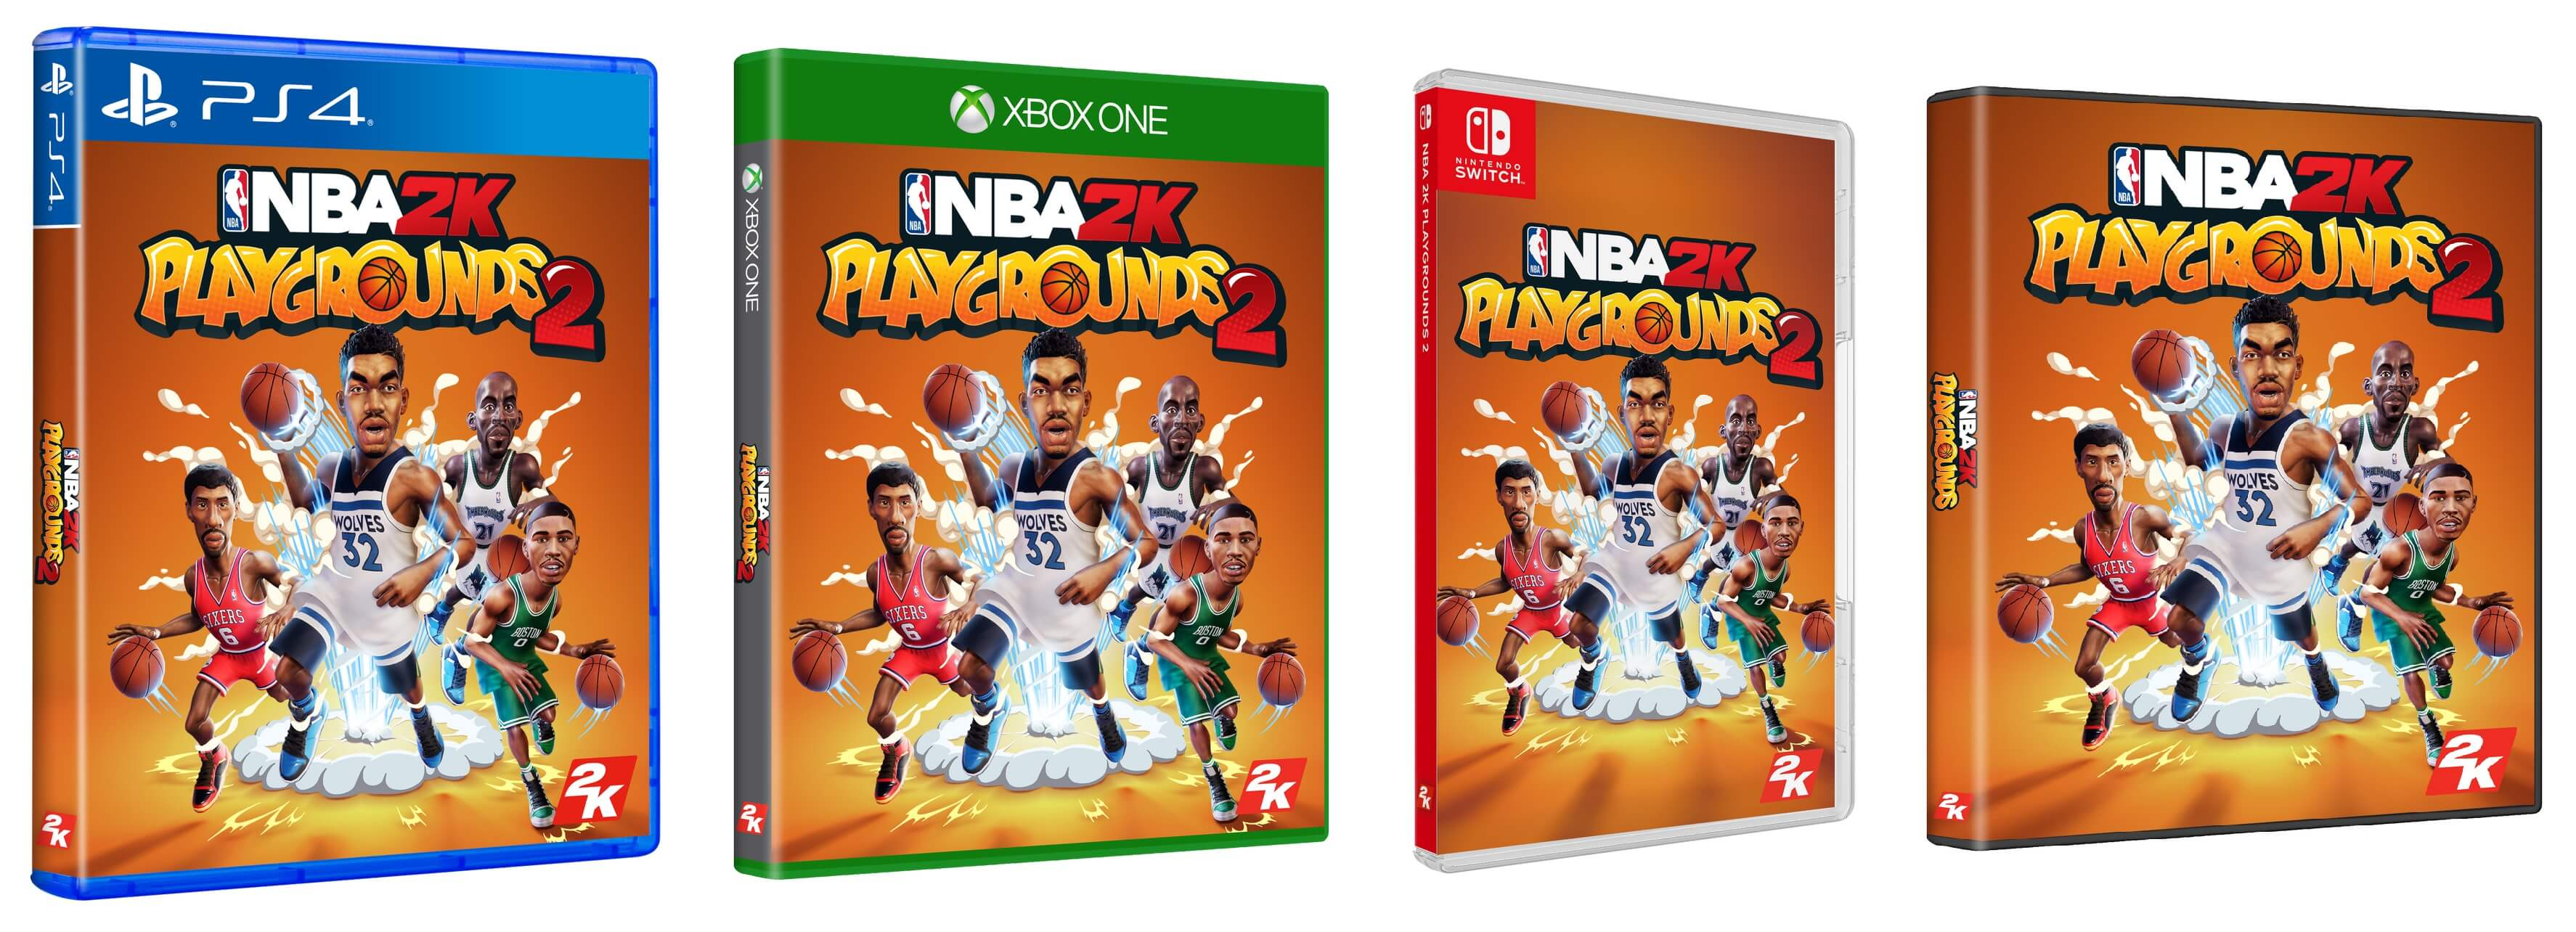 NBA-2K-Playgrounds-2-Philippines